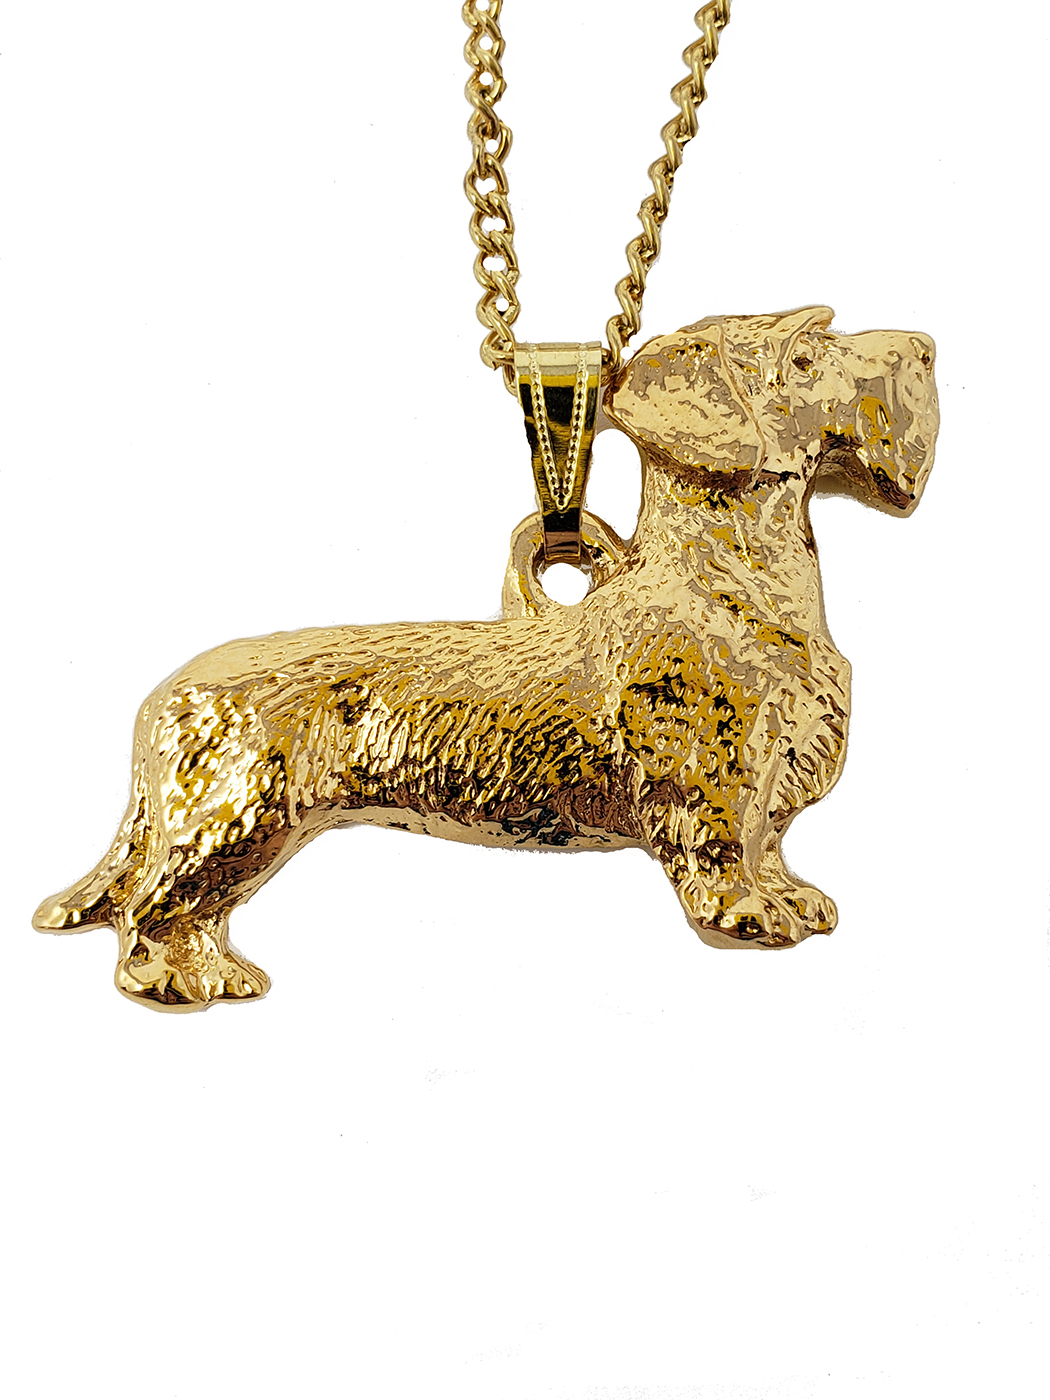 Wirehaired Dachshund 24K Gold Plated Pendant with Necklace